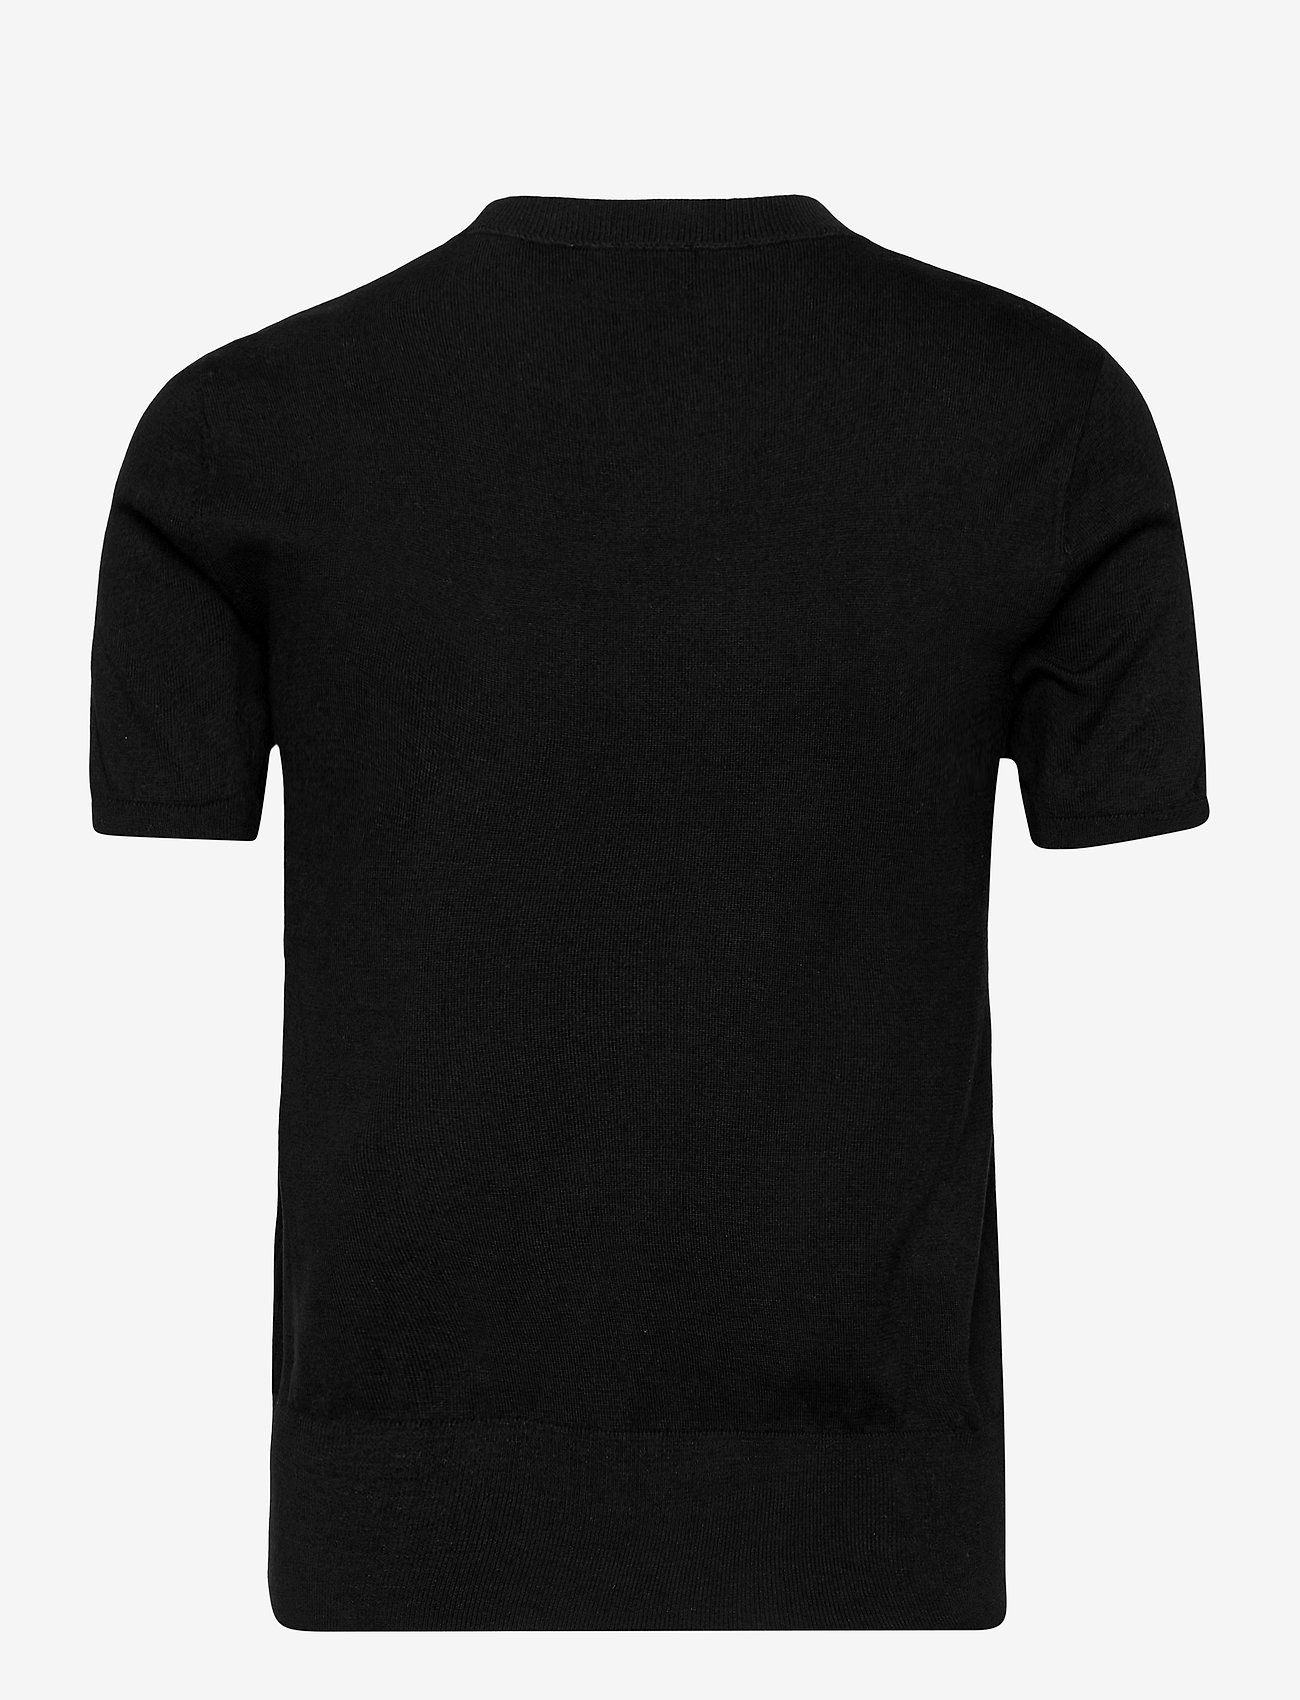 Polo Ralph Lauren - Cotton Short-Sleeve Sweater - knitted tops & t-shirts - polo black - 1